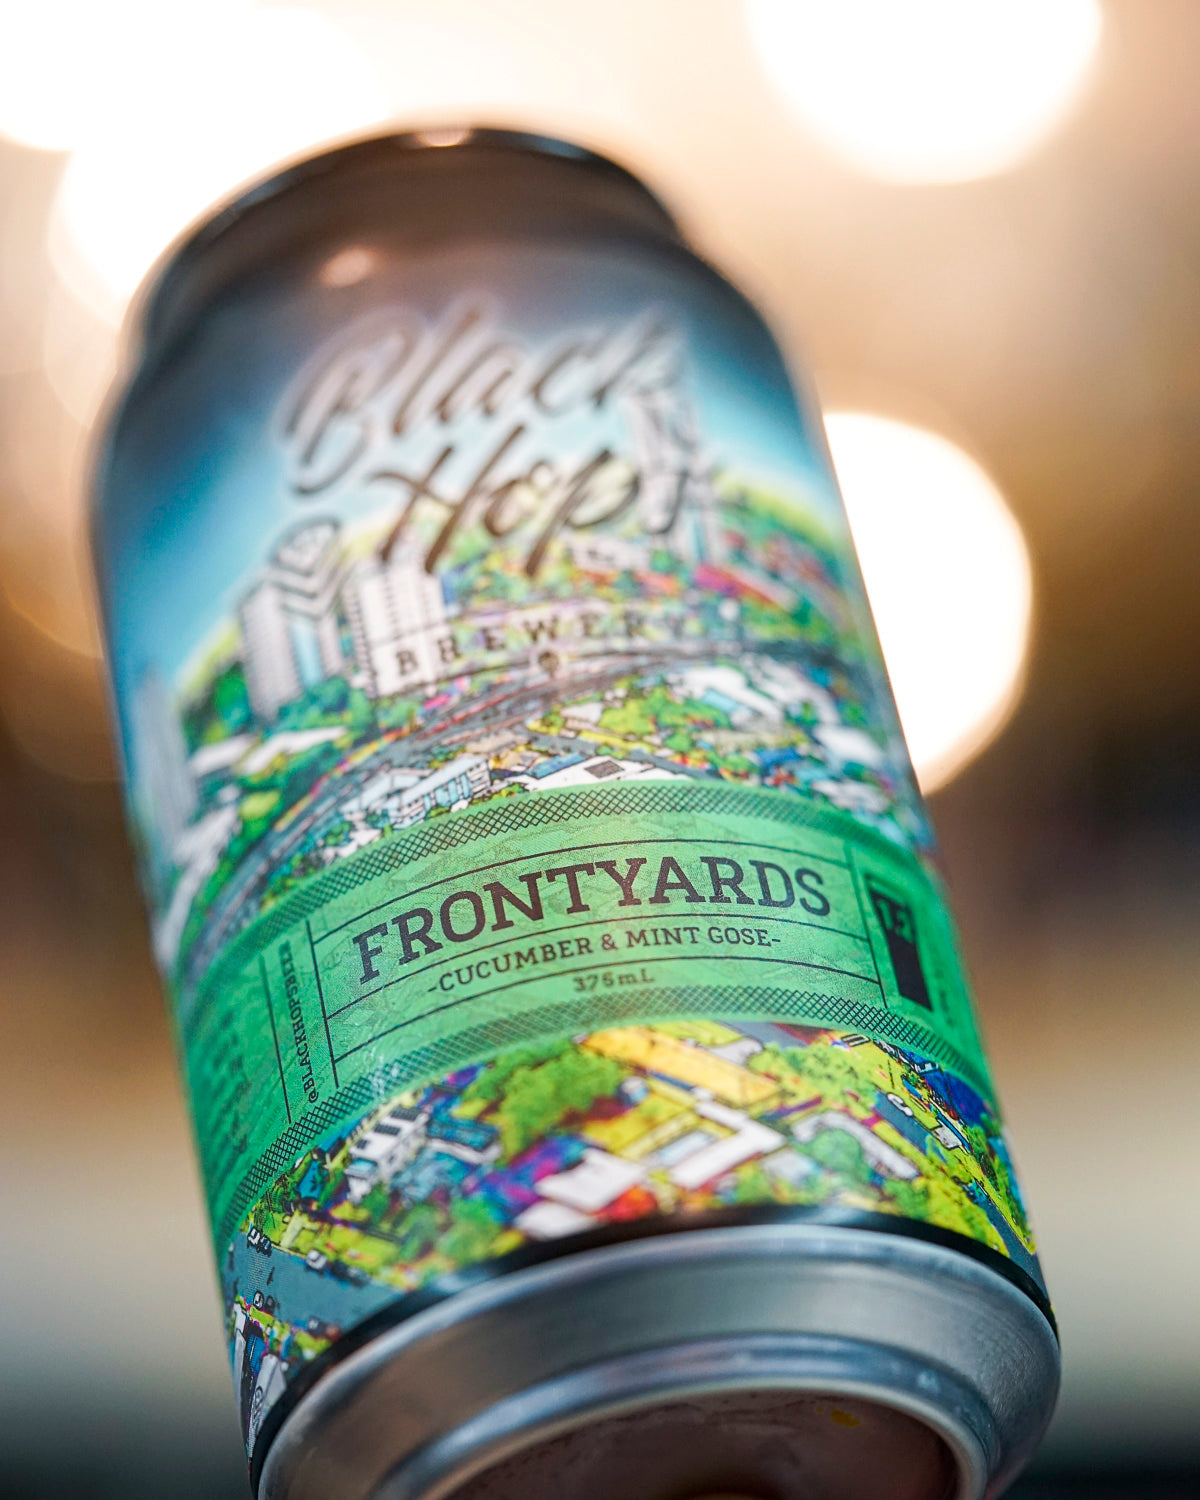 Black Hops 'Frontyards' Cucumber & Mint Gose 375mL